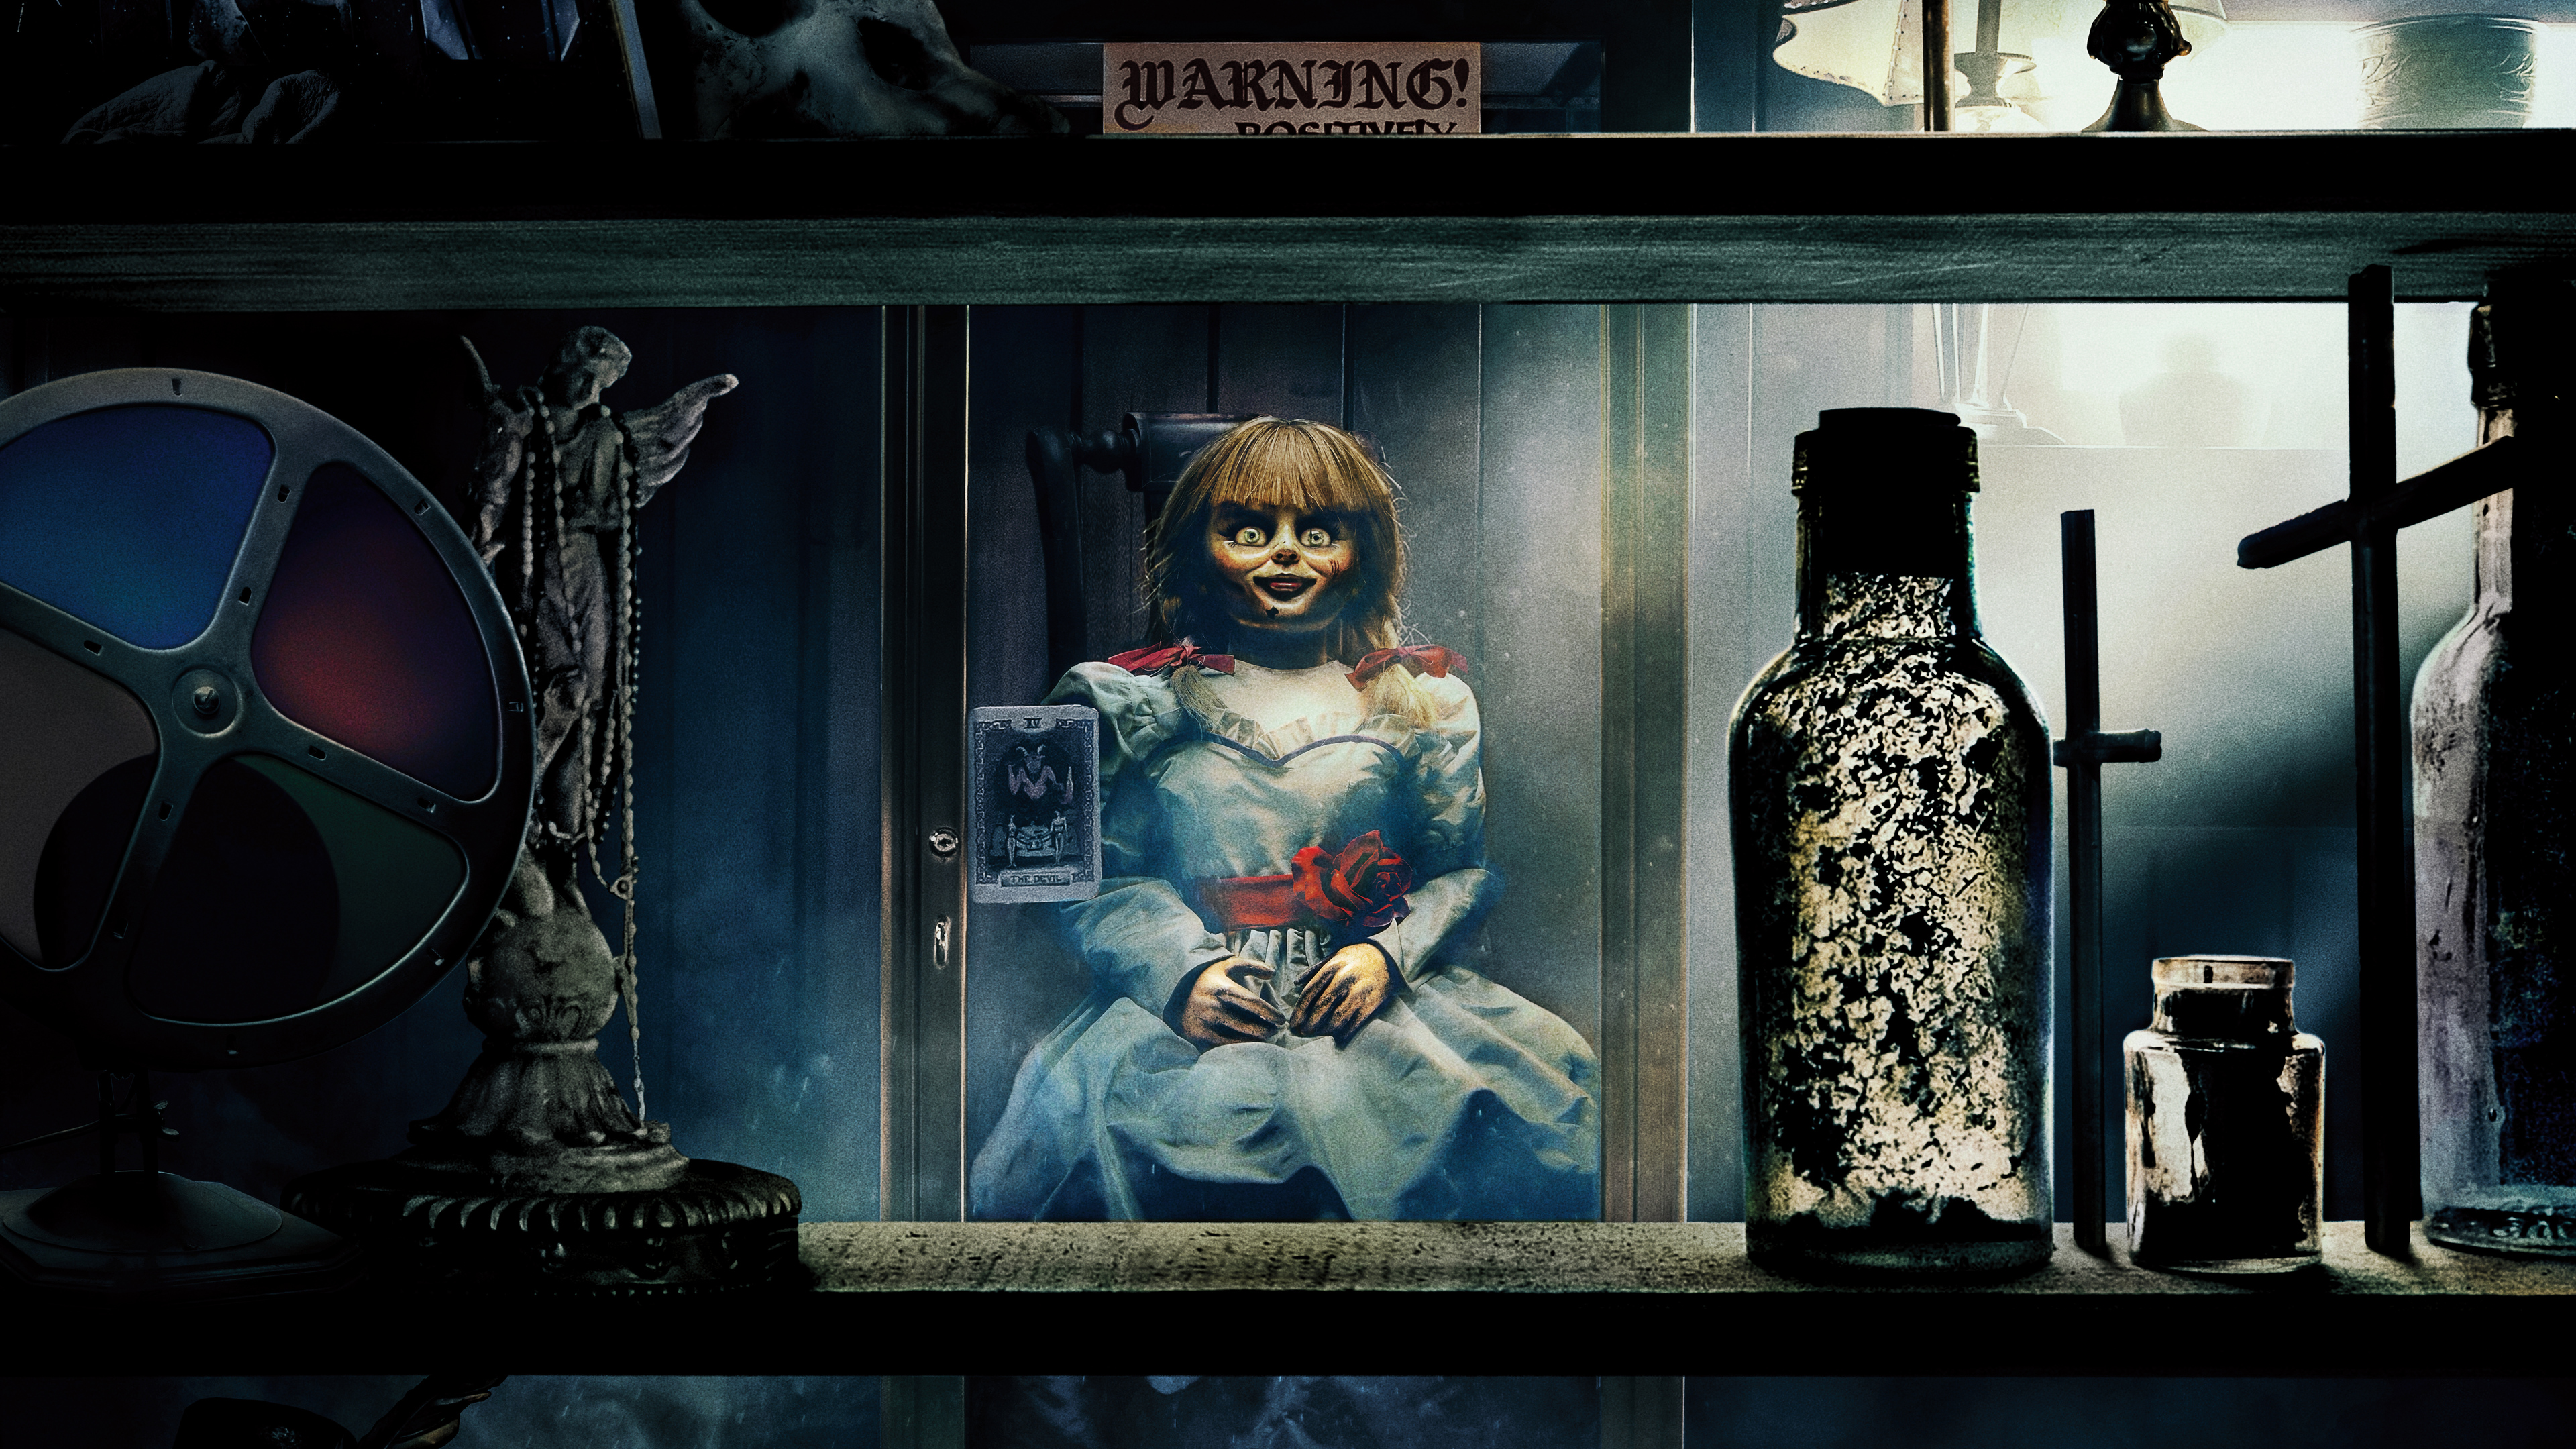 annabelle comes home 2019 1562107072 - Annabelle Comes Home 2019 - movies wallpapers, hd-wallpapers, annabelle comes home wallpapers, 8k wallpapers, 5k wallpapers, 4k-wallpapers, 2019 movies wallpapers